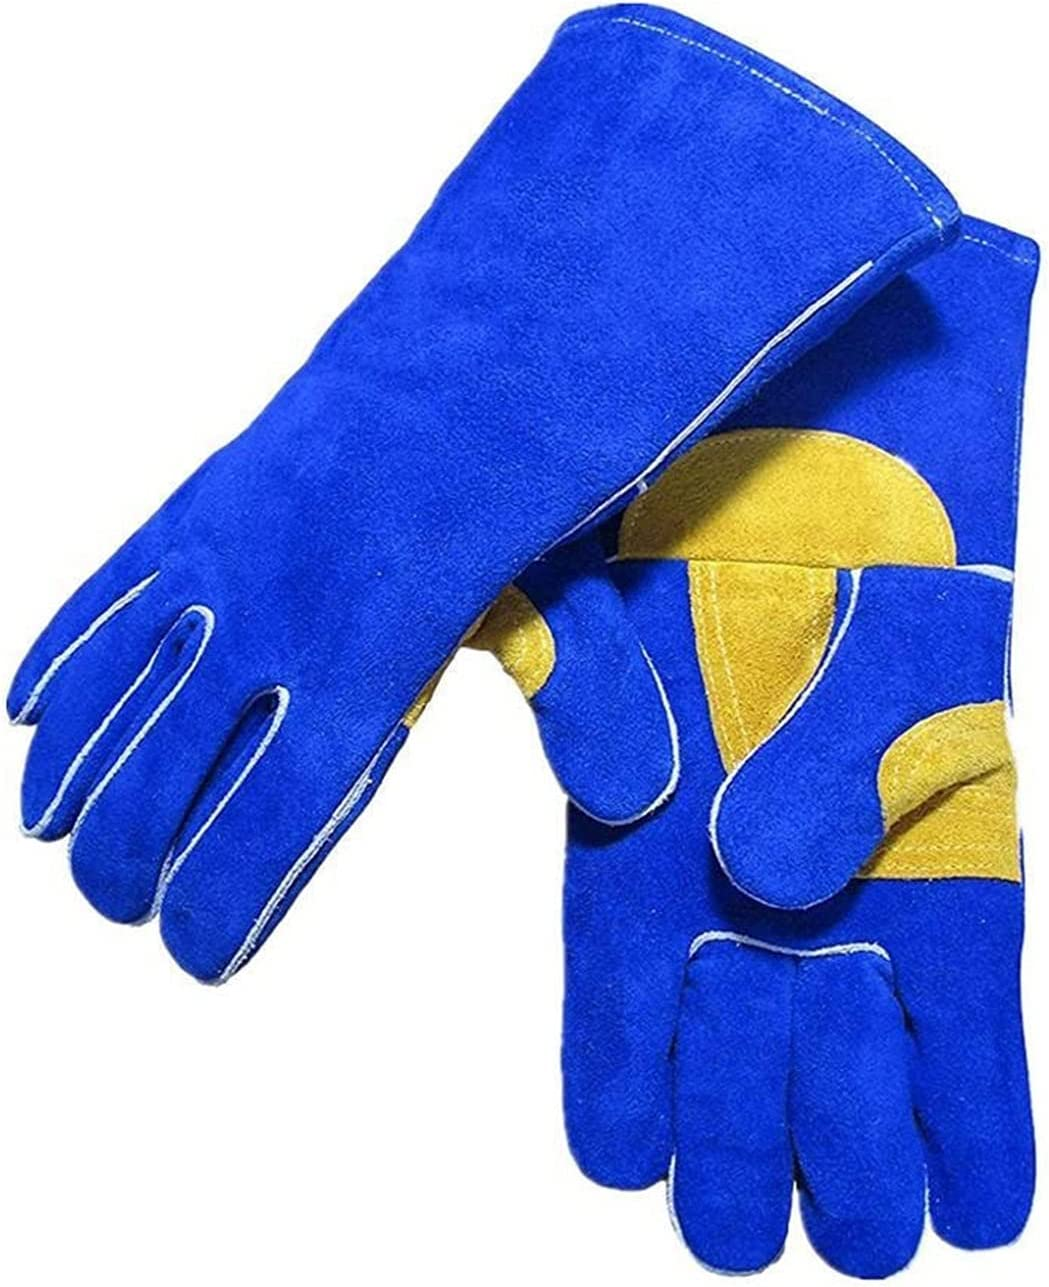 electric welding machine MIG Gloves Split Max 54% OFF 35cm New products, world's highest quality popular! 14